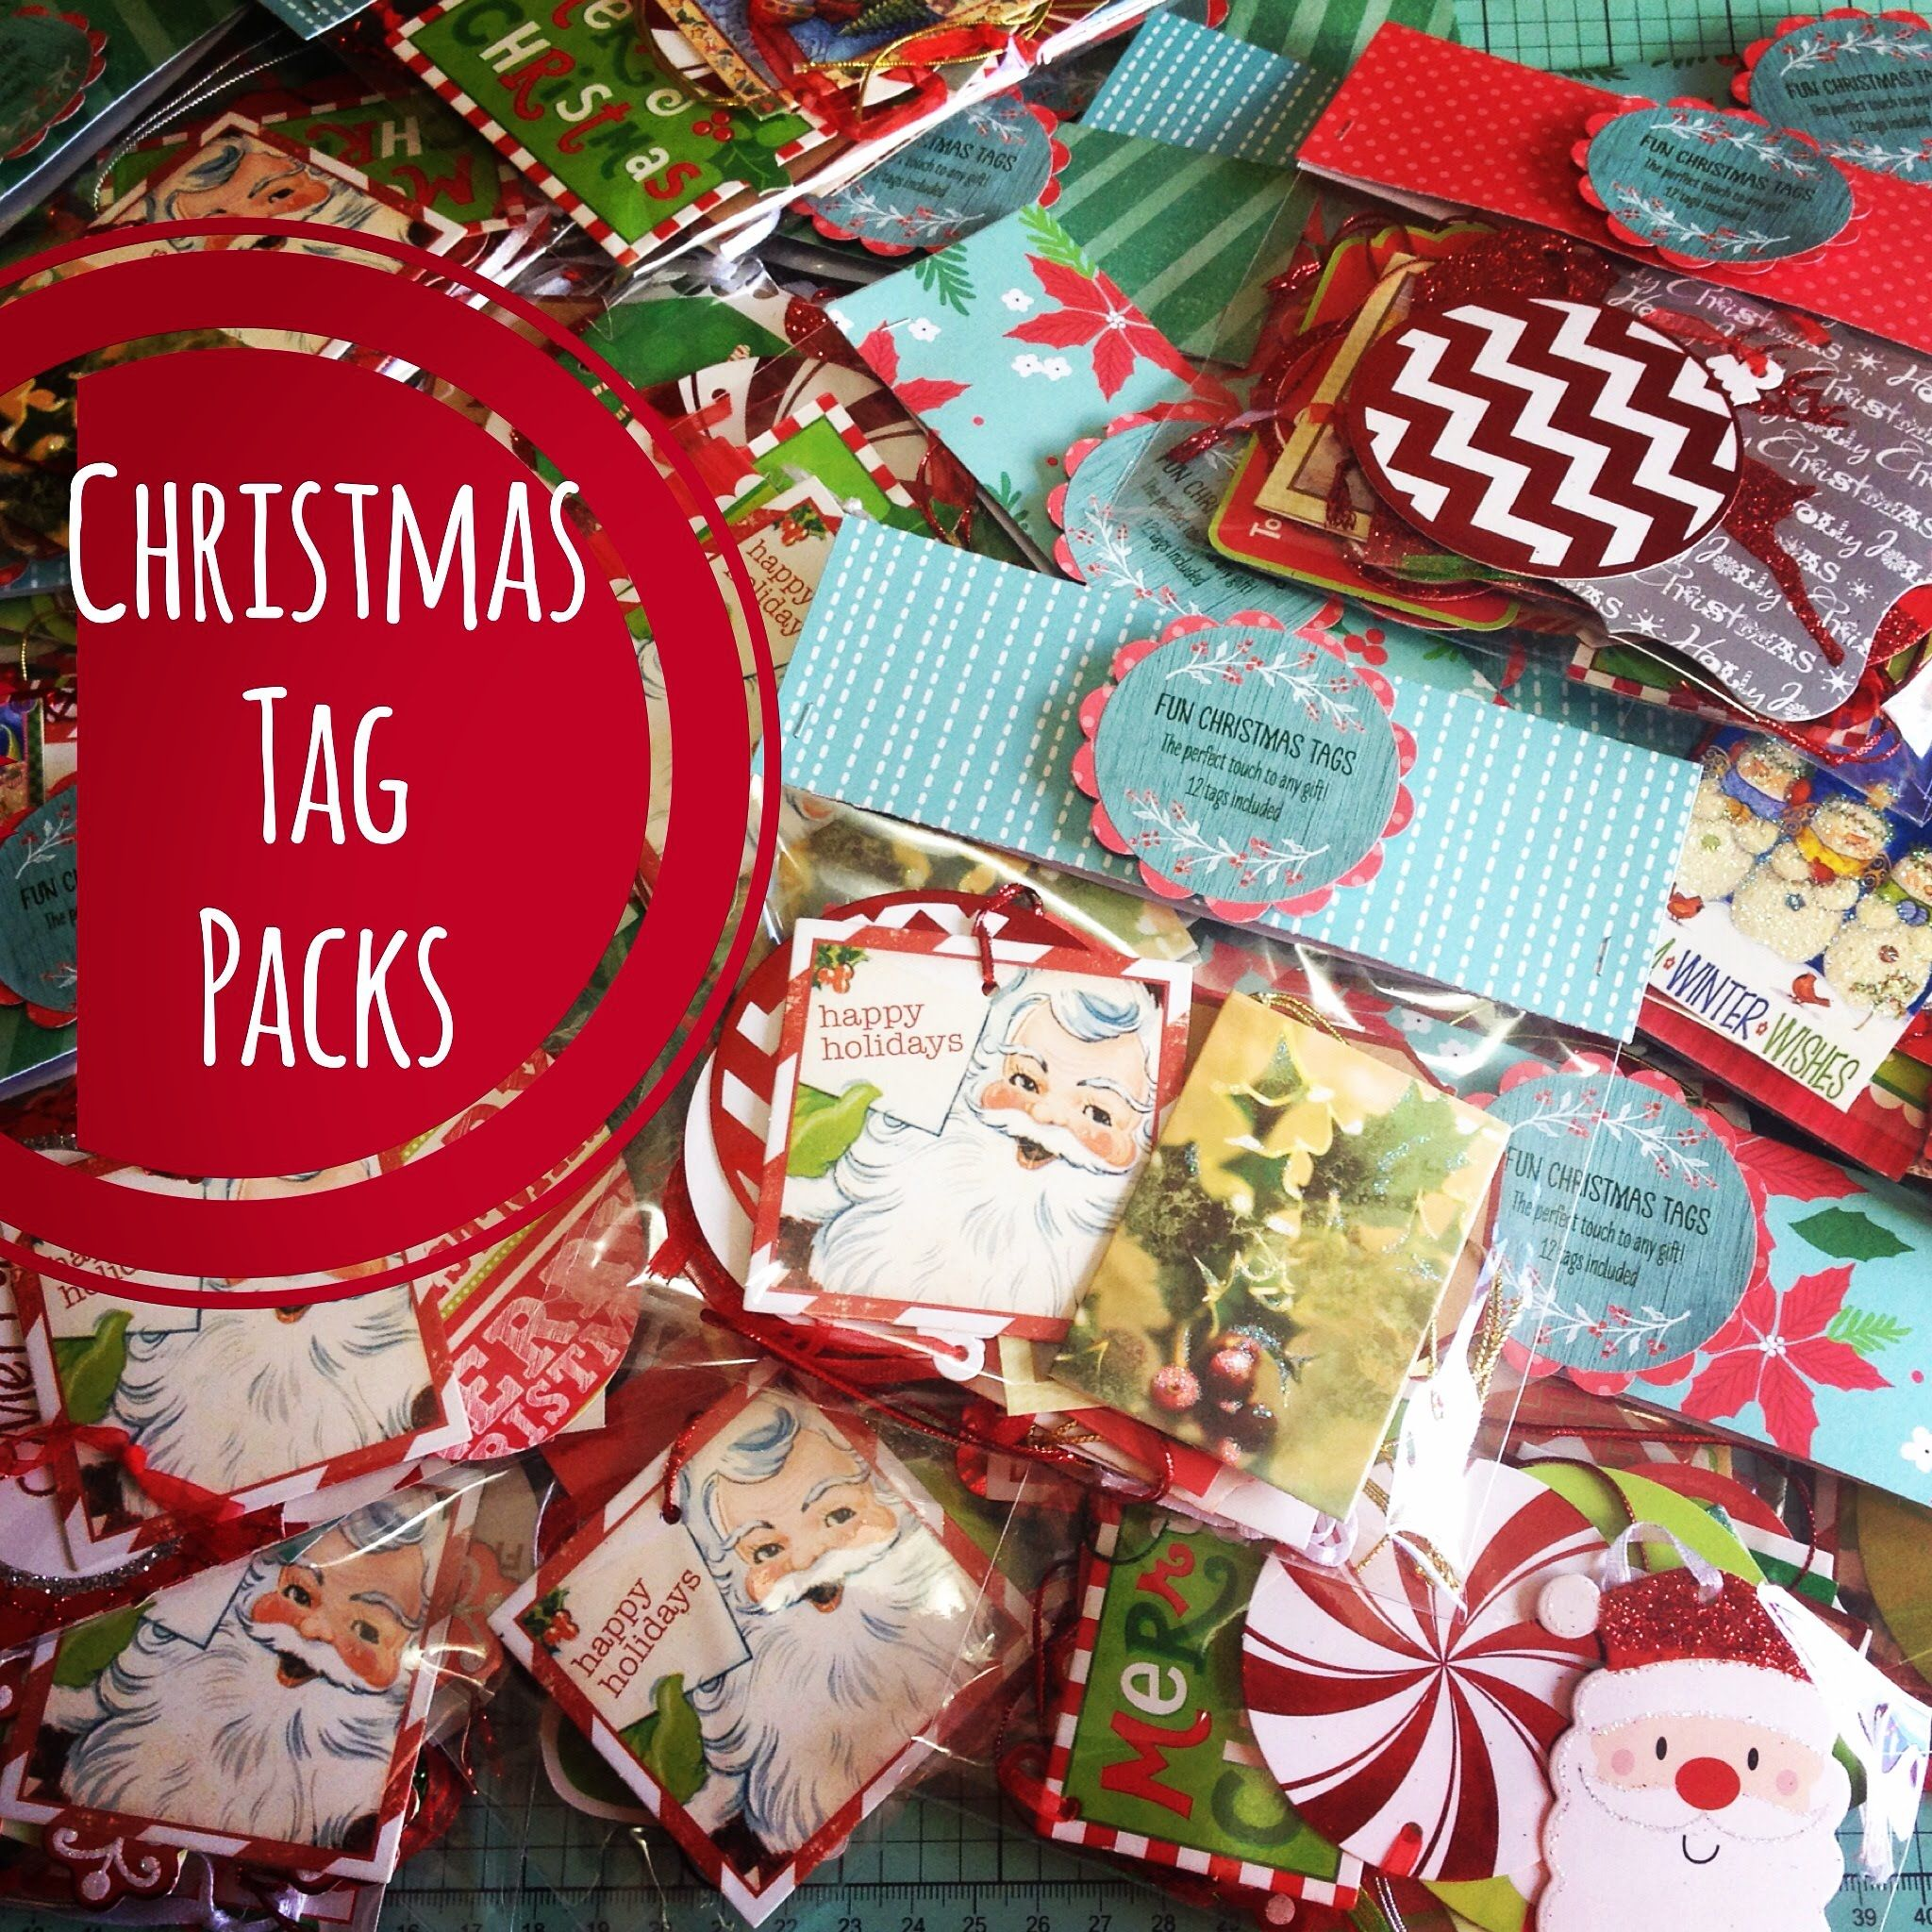 Craft Fair Idea 11 Christmas Tag Packs Christmas Craft Show Xmas Crafts Bazaar Crafts